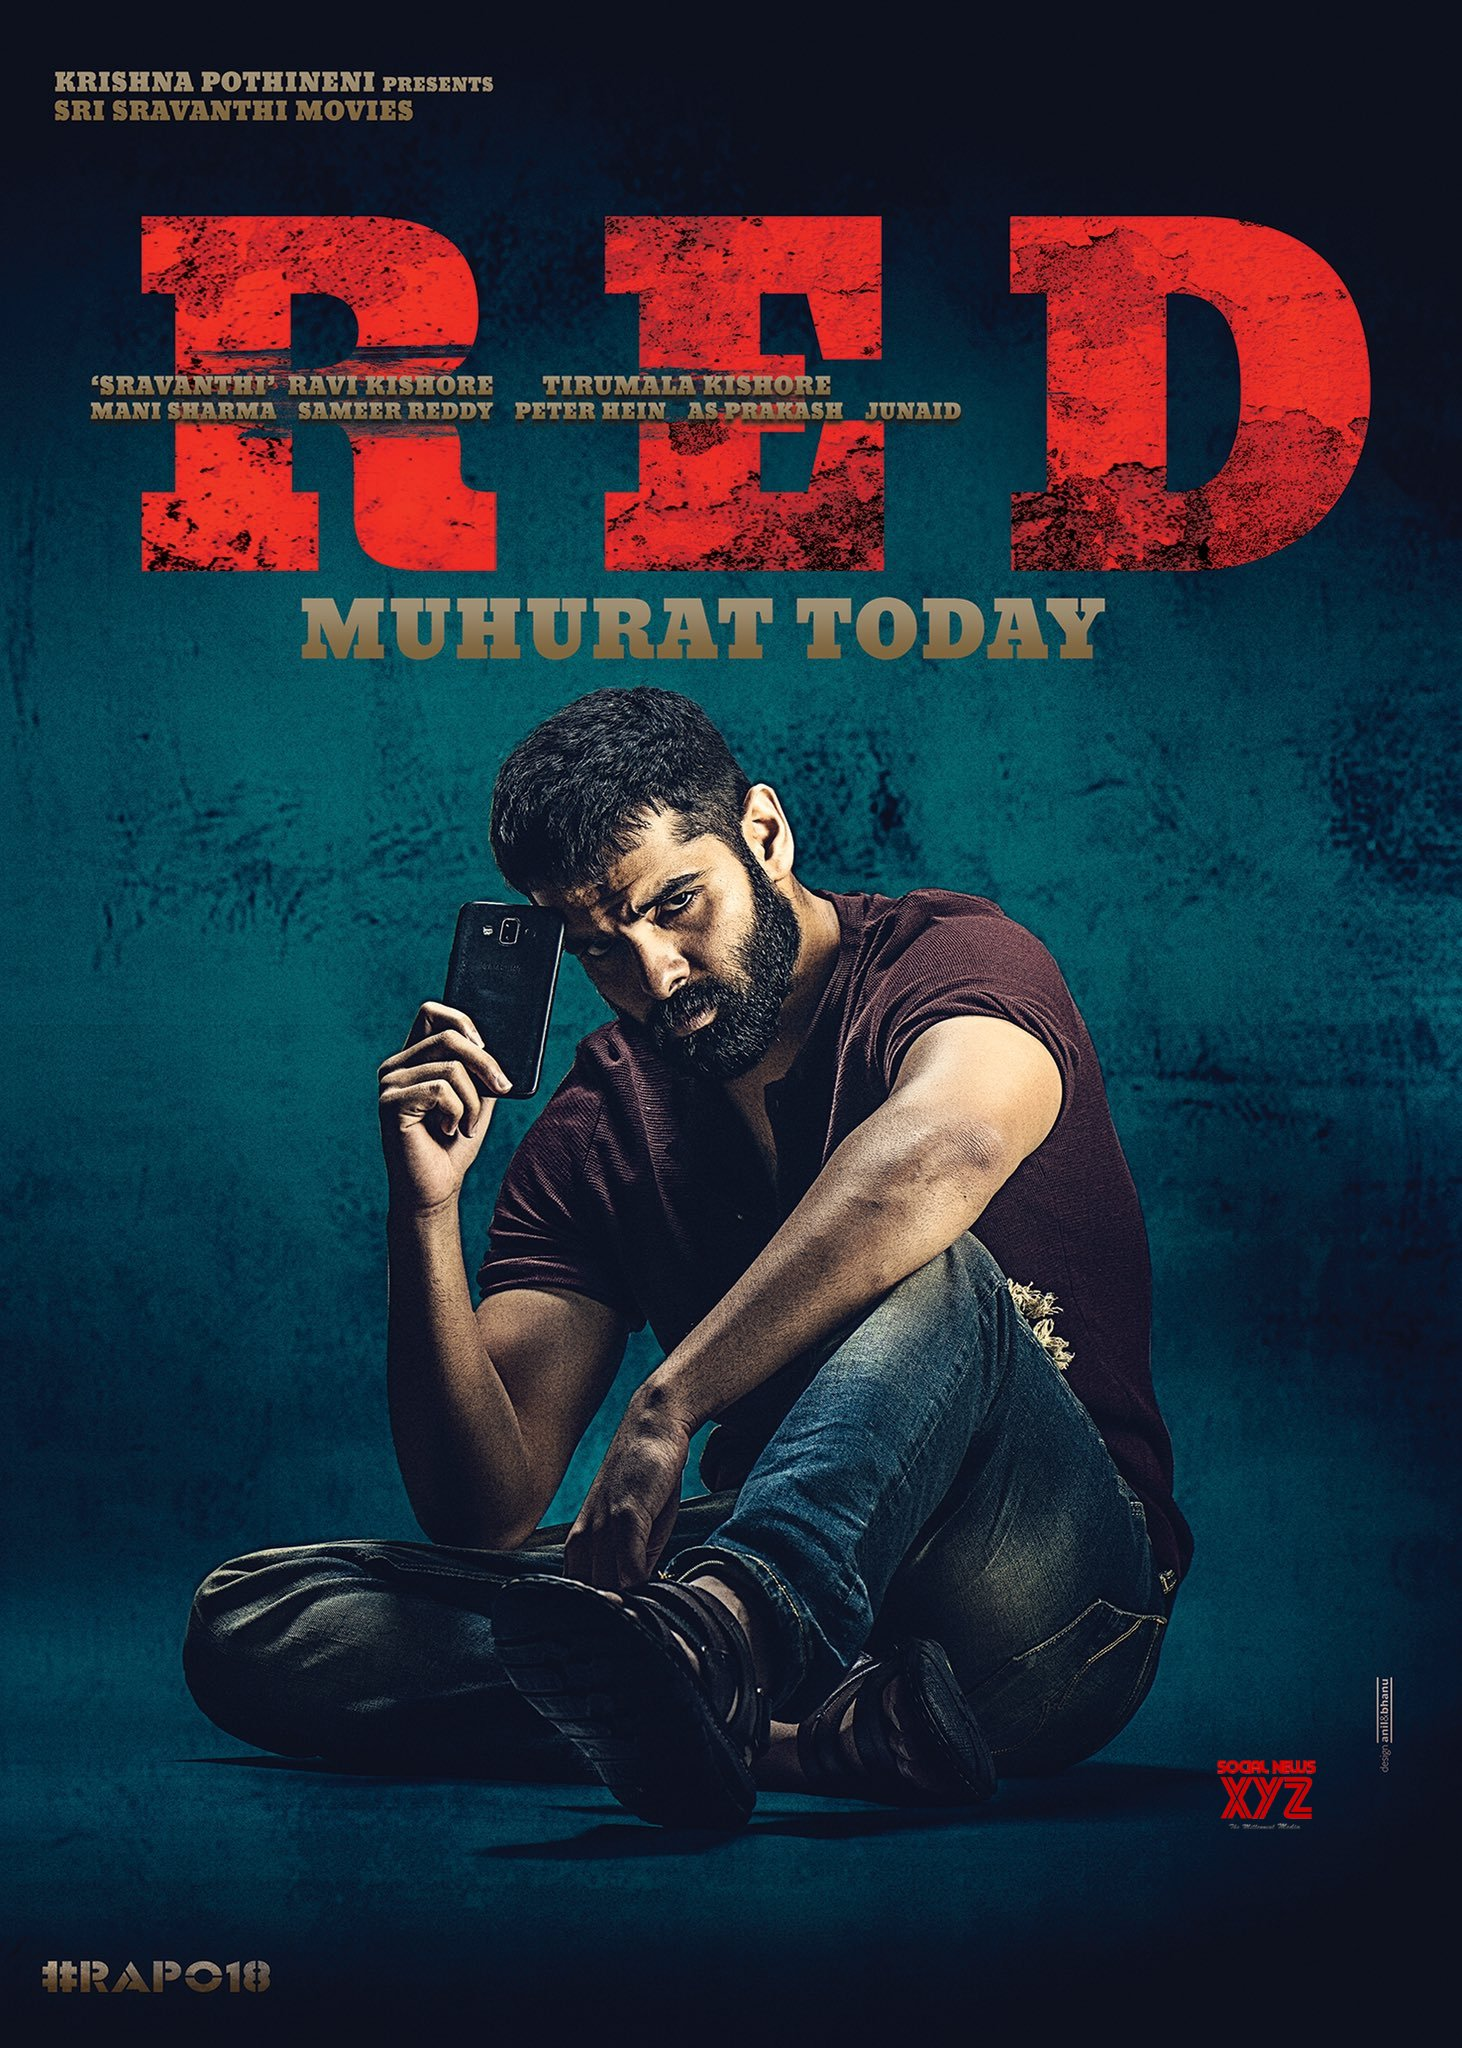 Ram's RED Movie Muhurat Today Poster - Social News XYZ